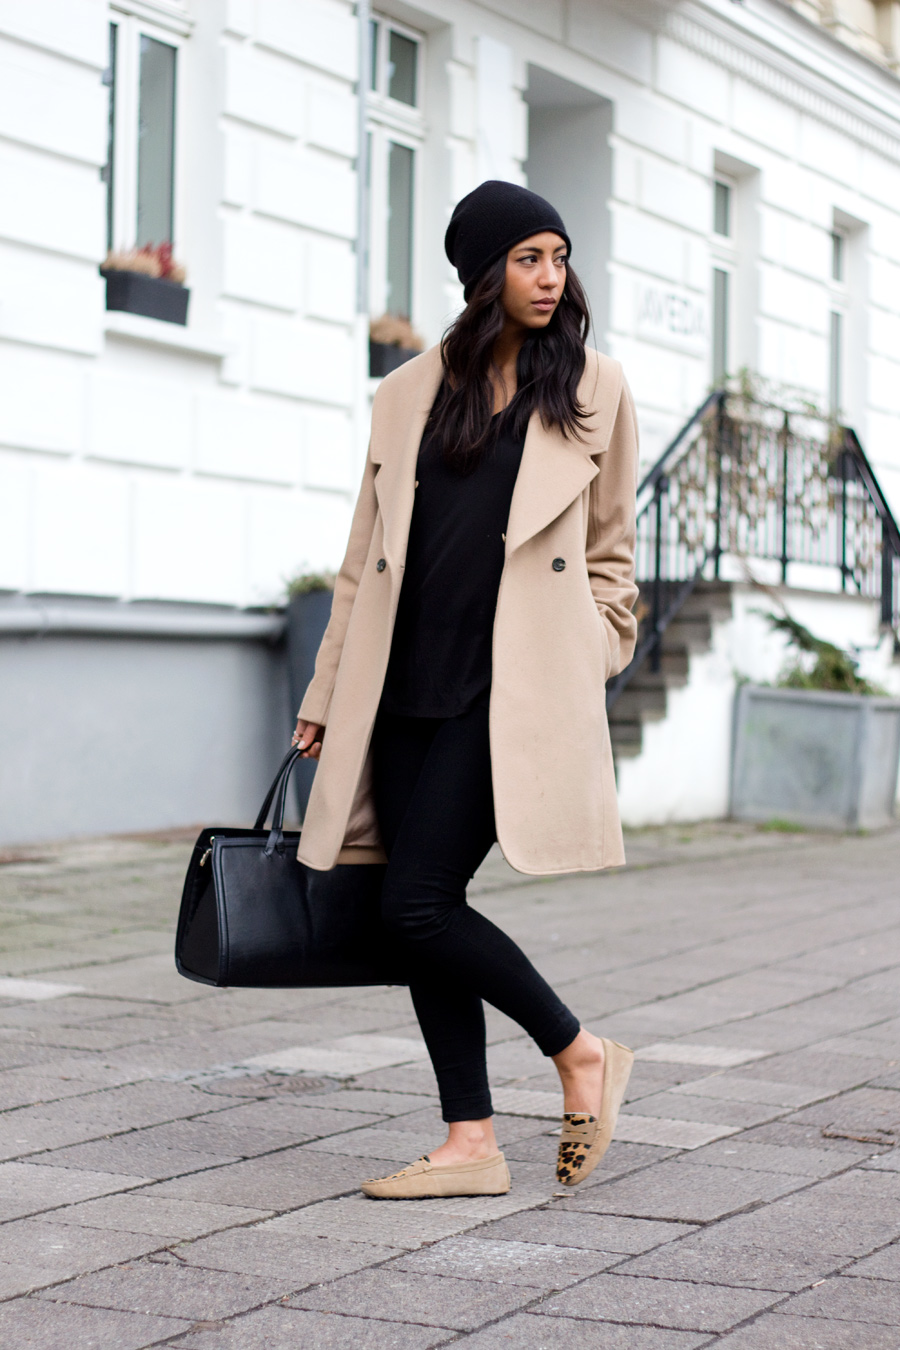 Winter Shoes: Ankle to Combine with Skirt and Pants